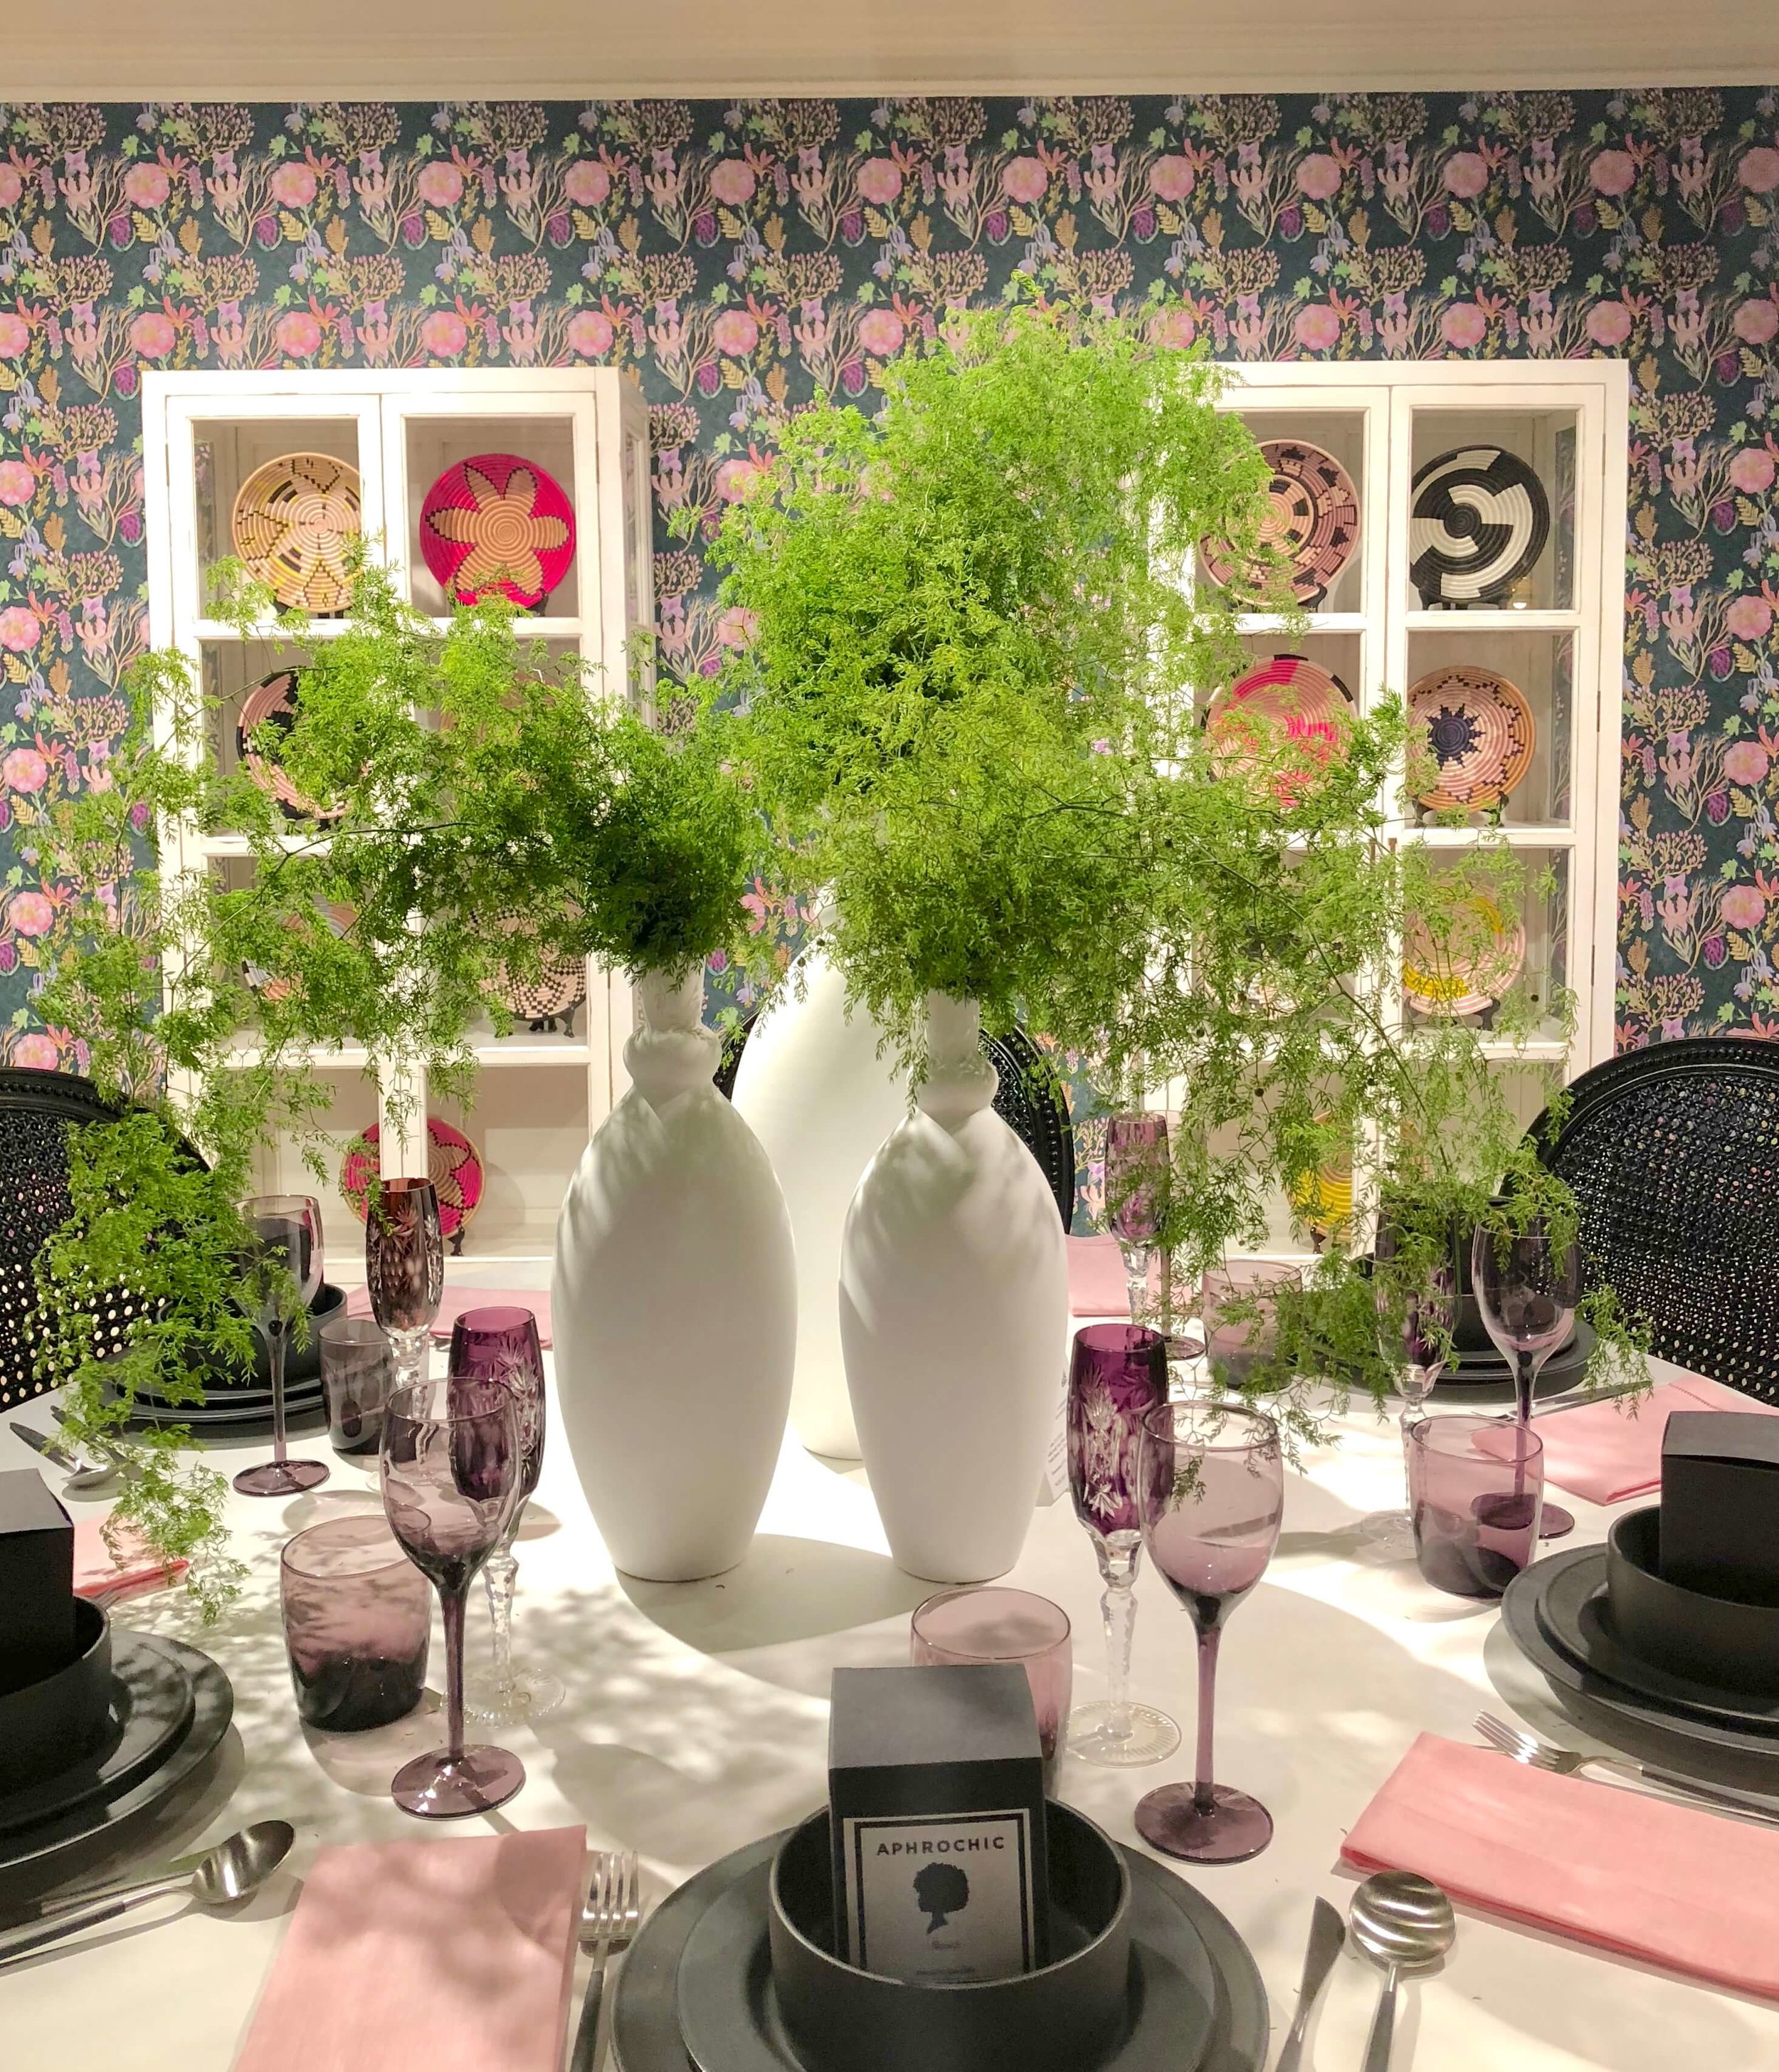 Beautiful greens as the centerpiece in dining room designed by Aphrochic for the Alden Parkes showroom | #centerpiece #floralarrangement #tabletop #tablesetting